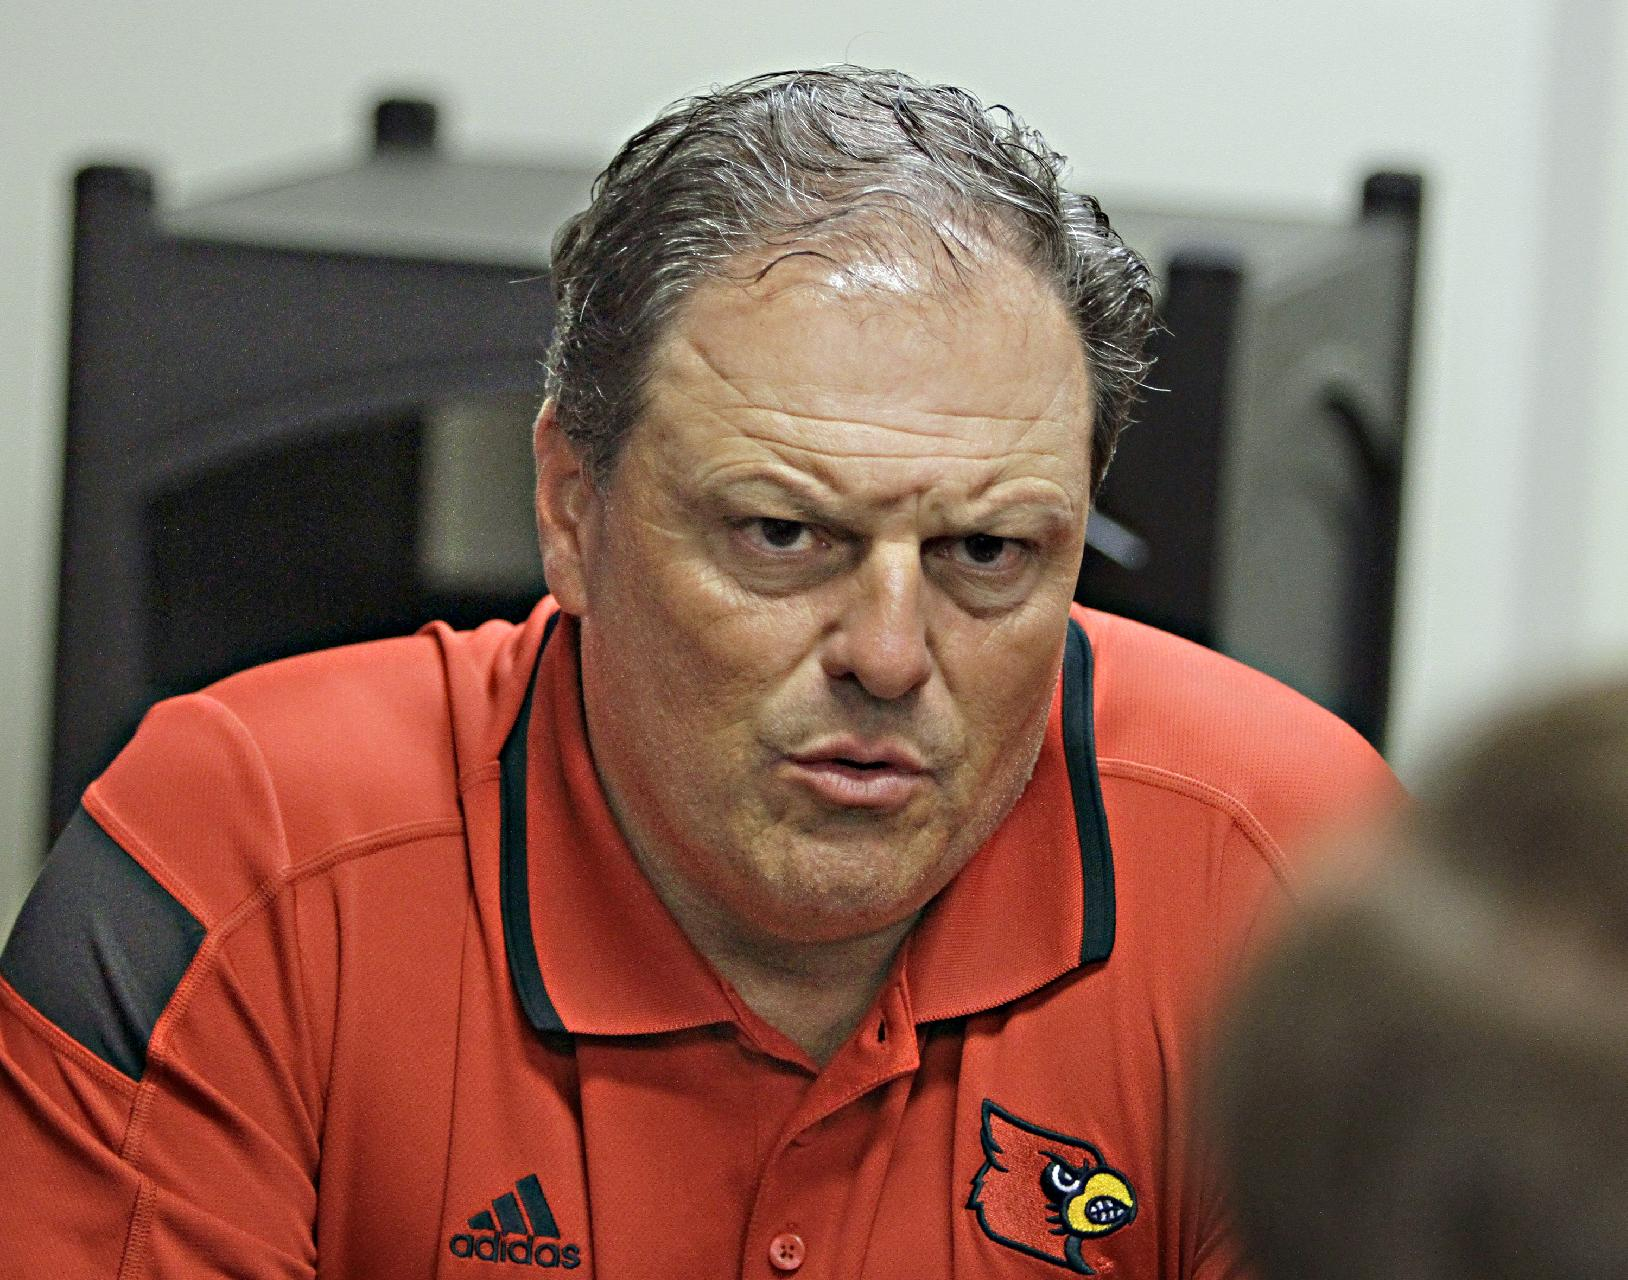 Louisville defensive coordinator Todd Grantham discusses the first week of practice for the Cardinals. Saturday, Aug. 9, 2014.  (AP Photo/Garry Jones)